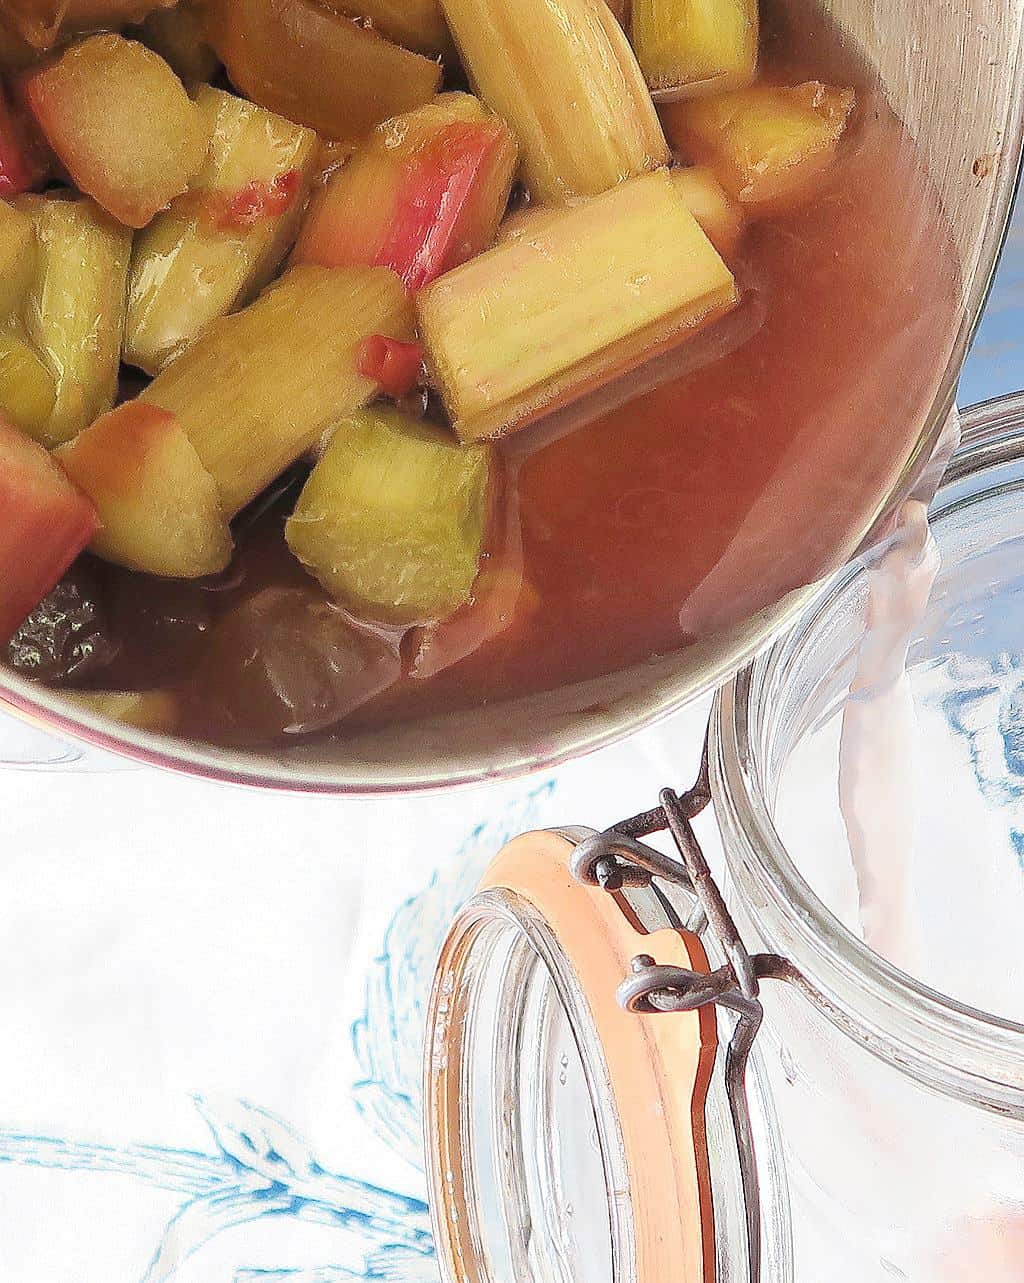 pouring homemade ginger and rhubarb gin into a jar